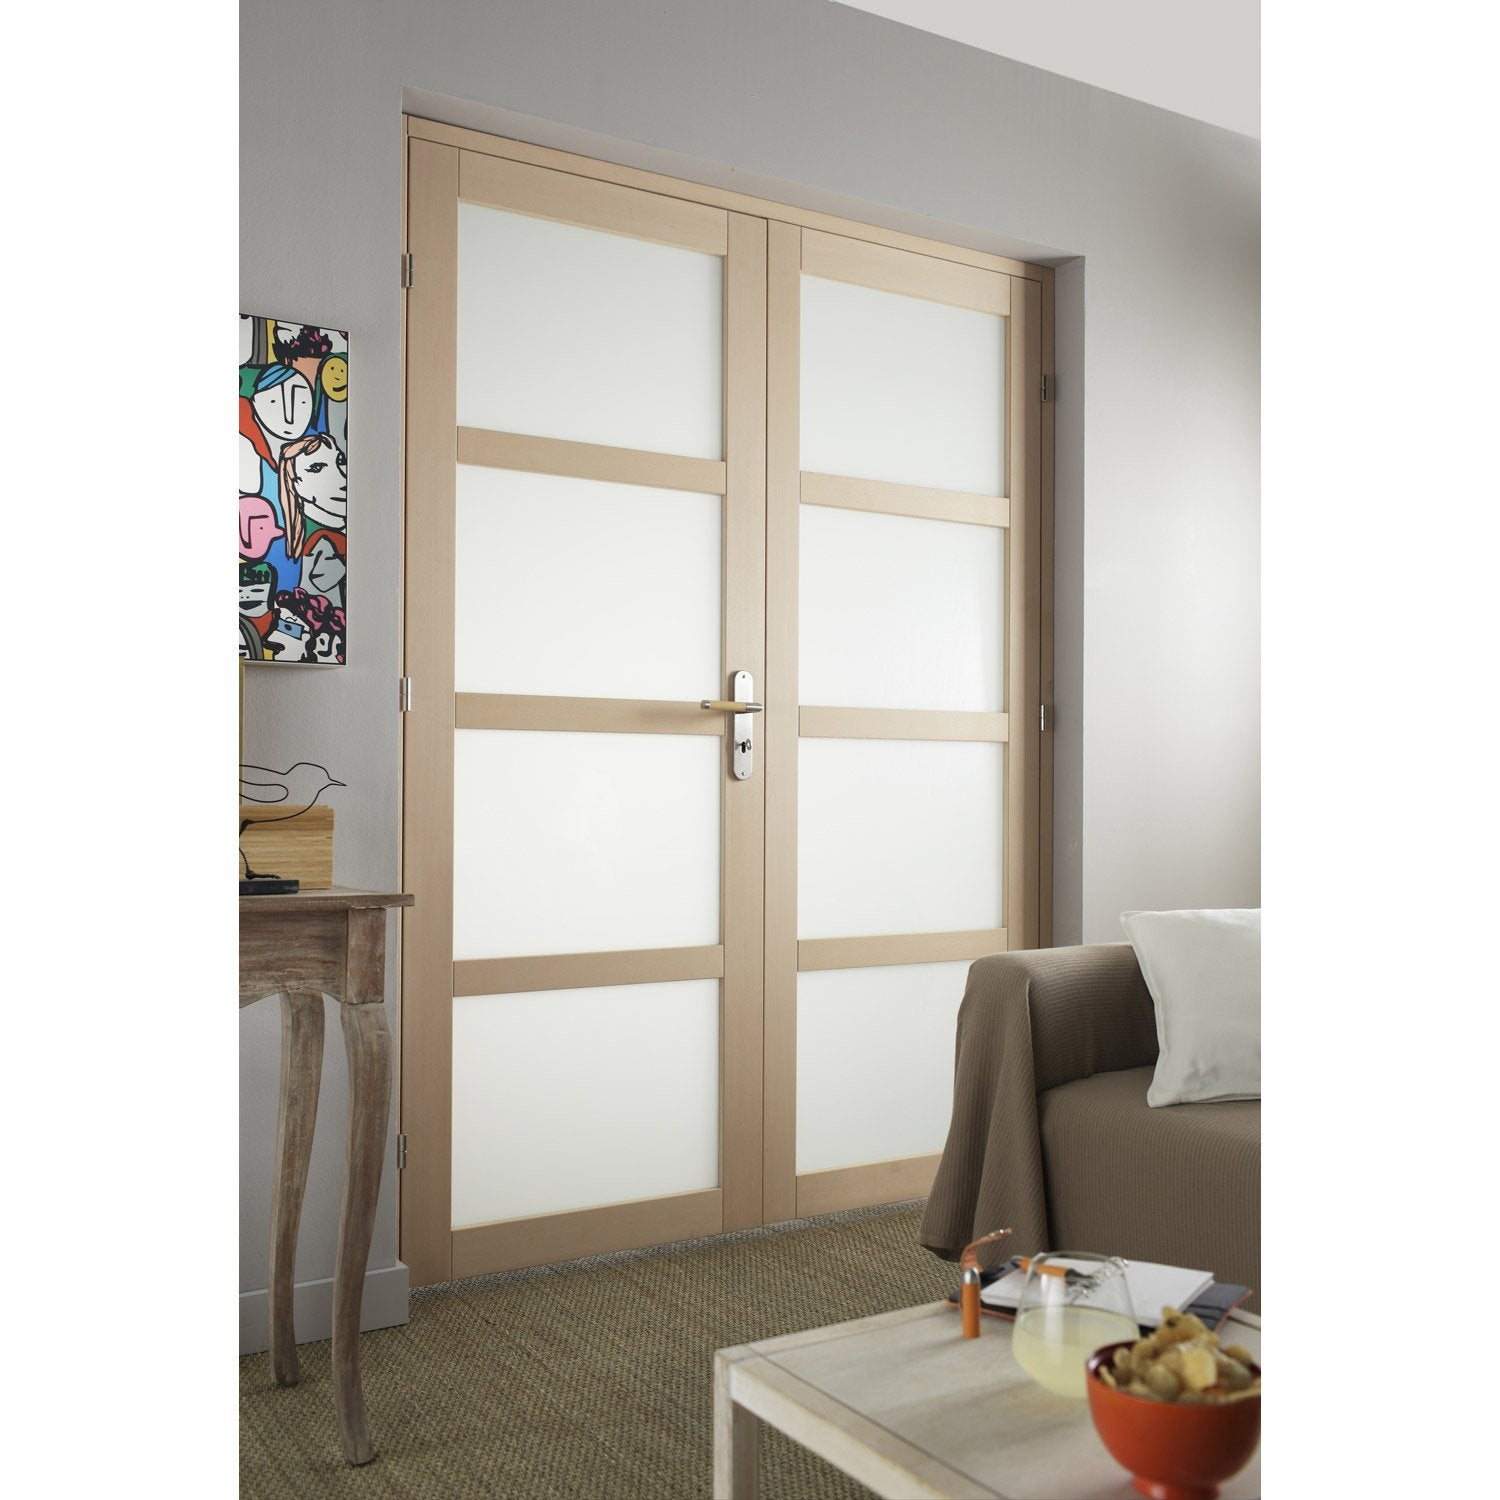 Porte accordeon interieur leroy merlin fashion designs - Porte fenetre renovation leroy merlin ...